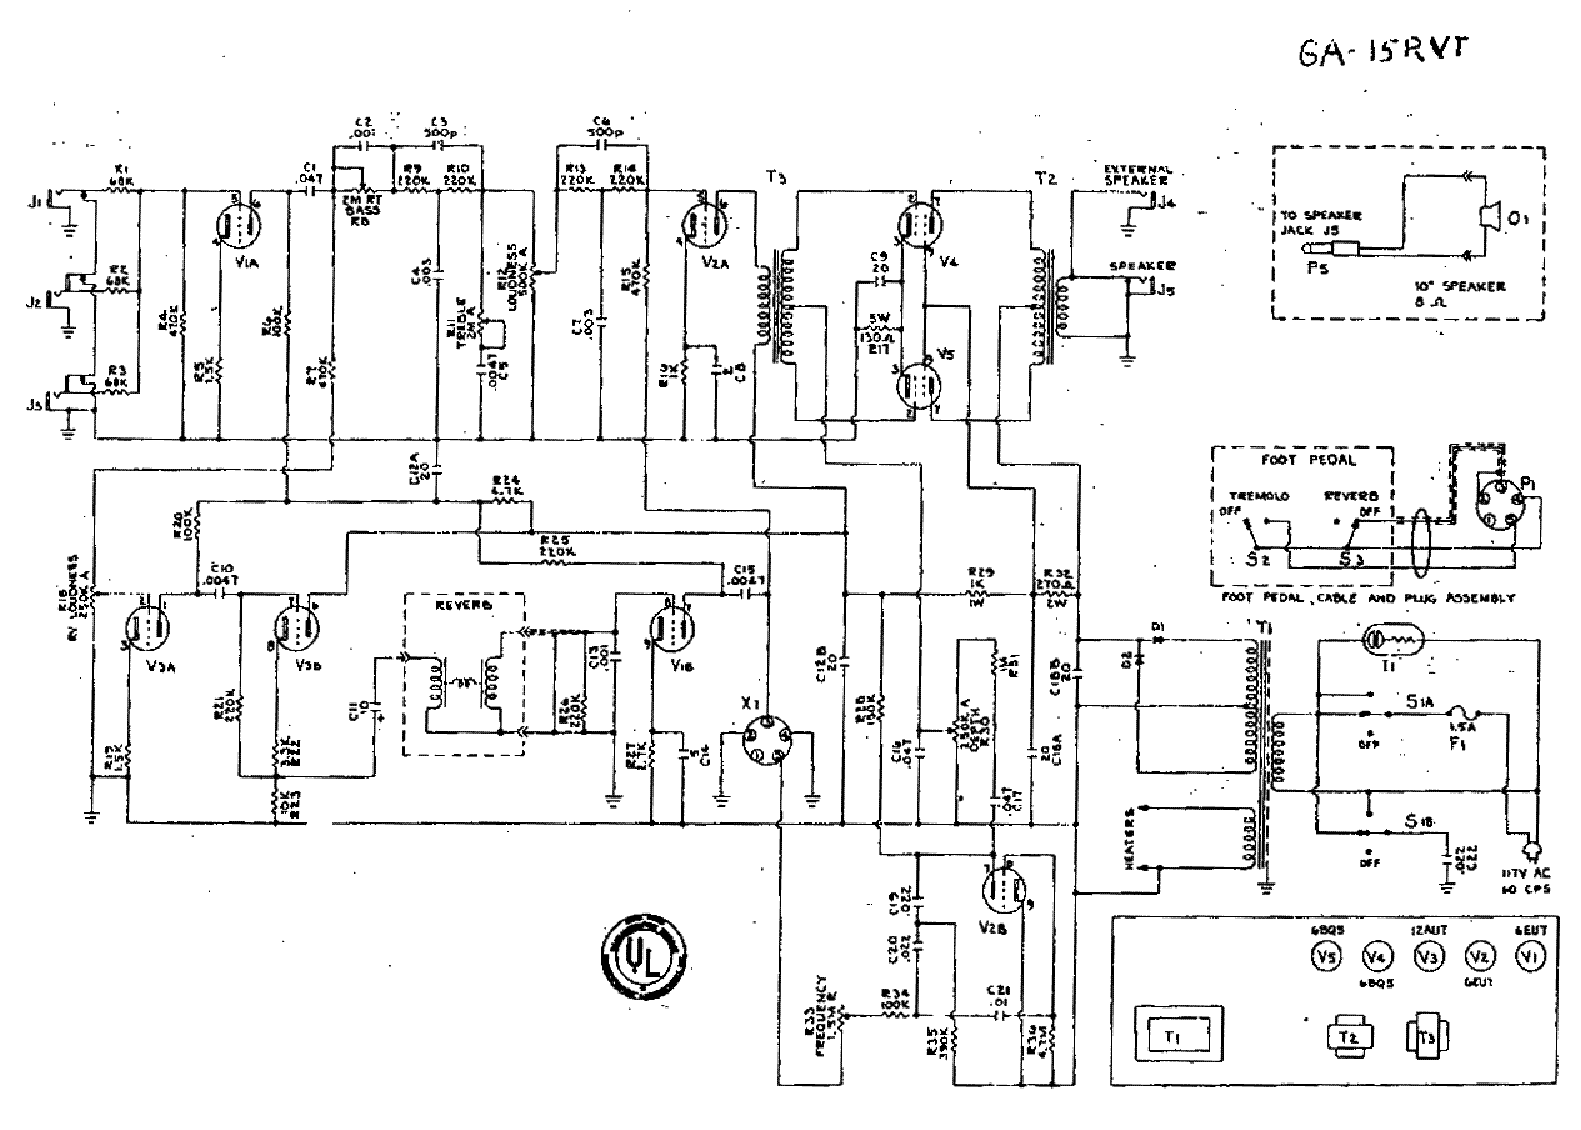 Gibson Ga 19rvt Schematic Service Manual Download